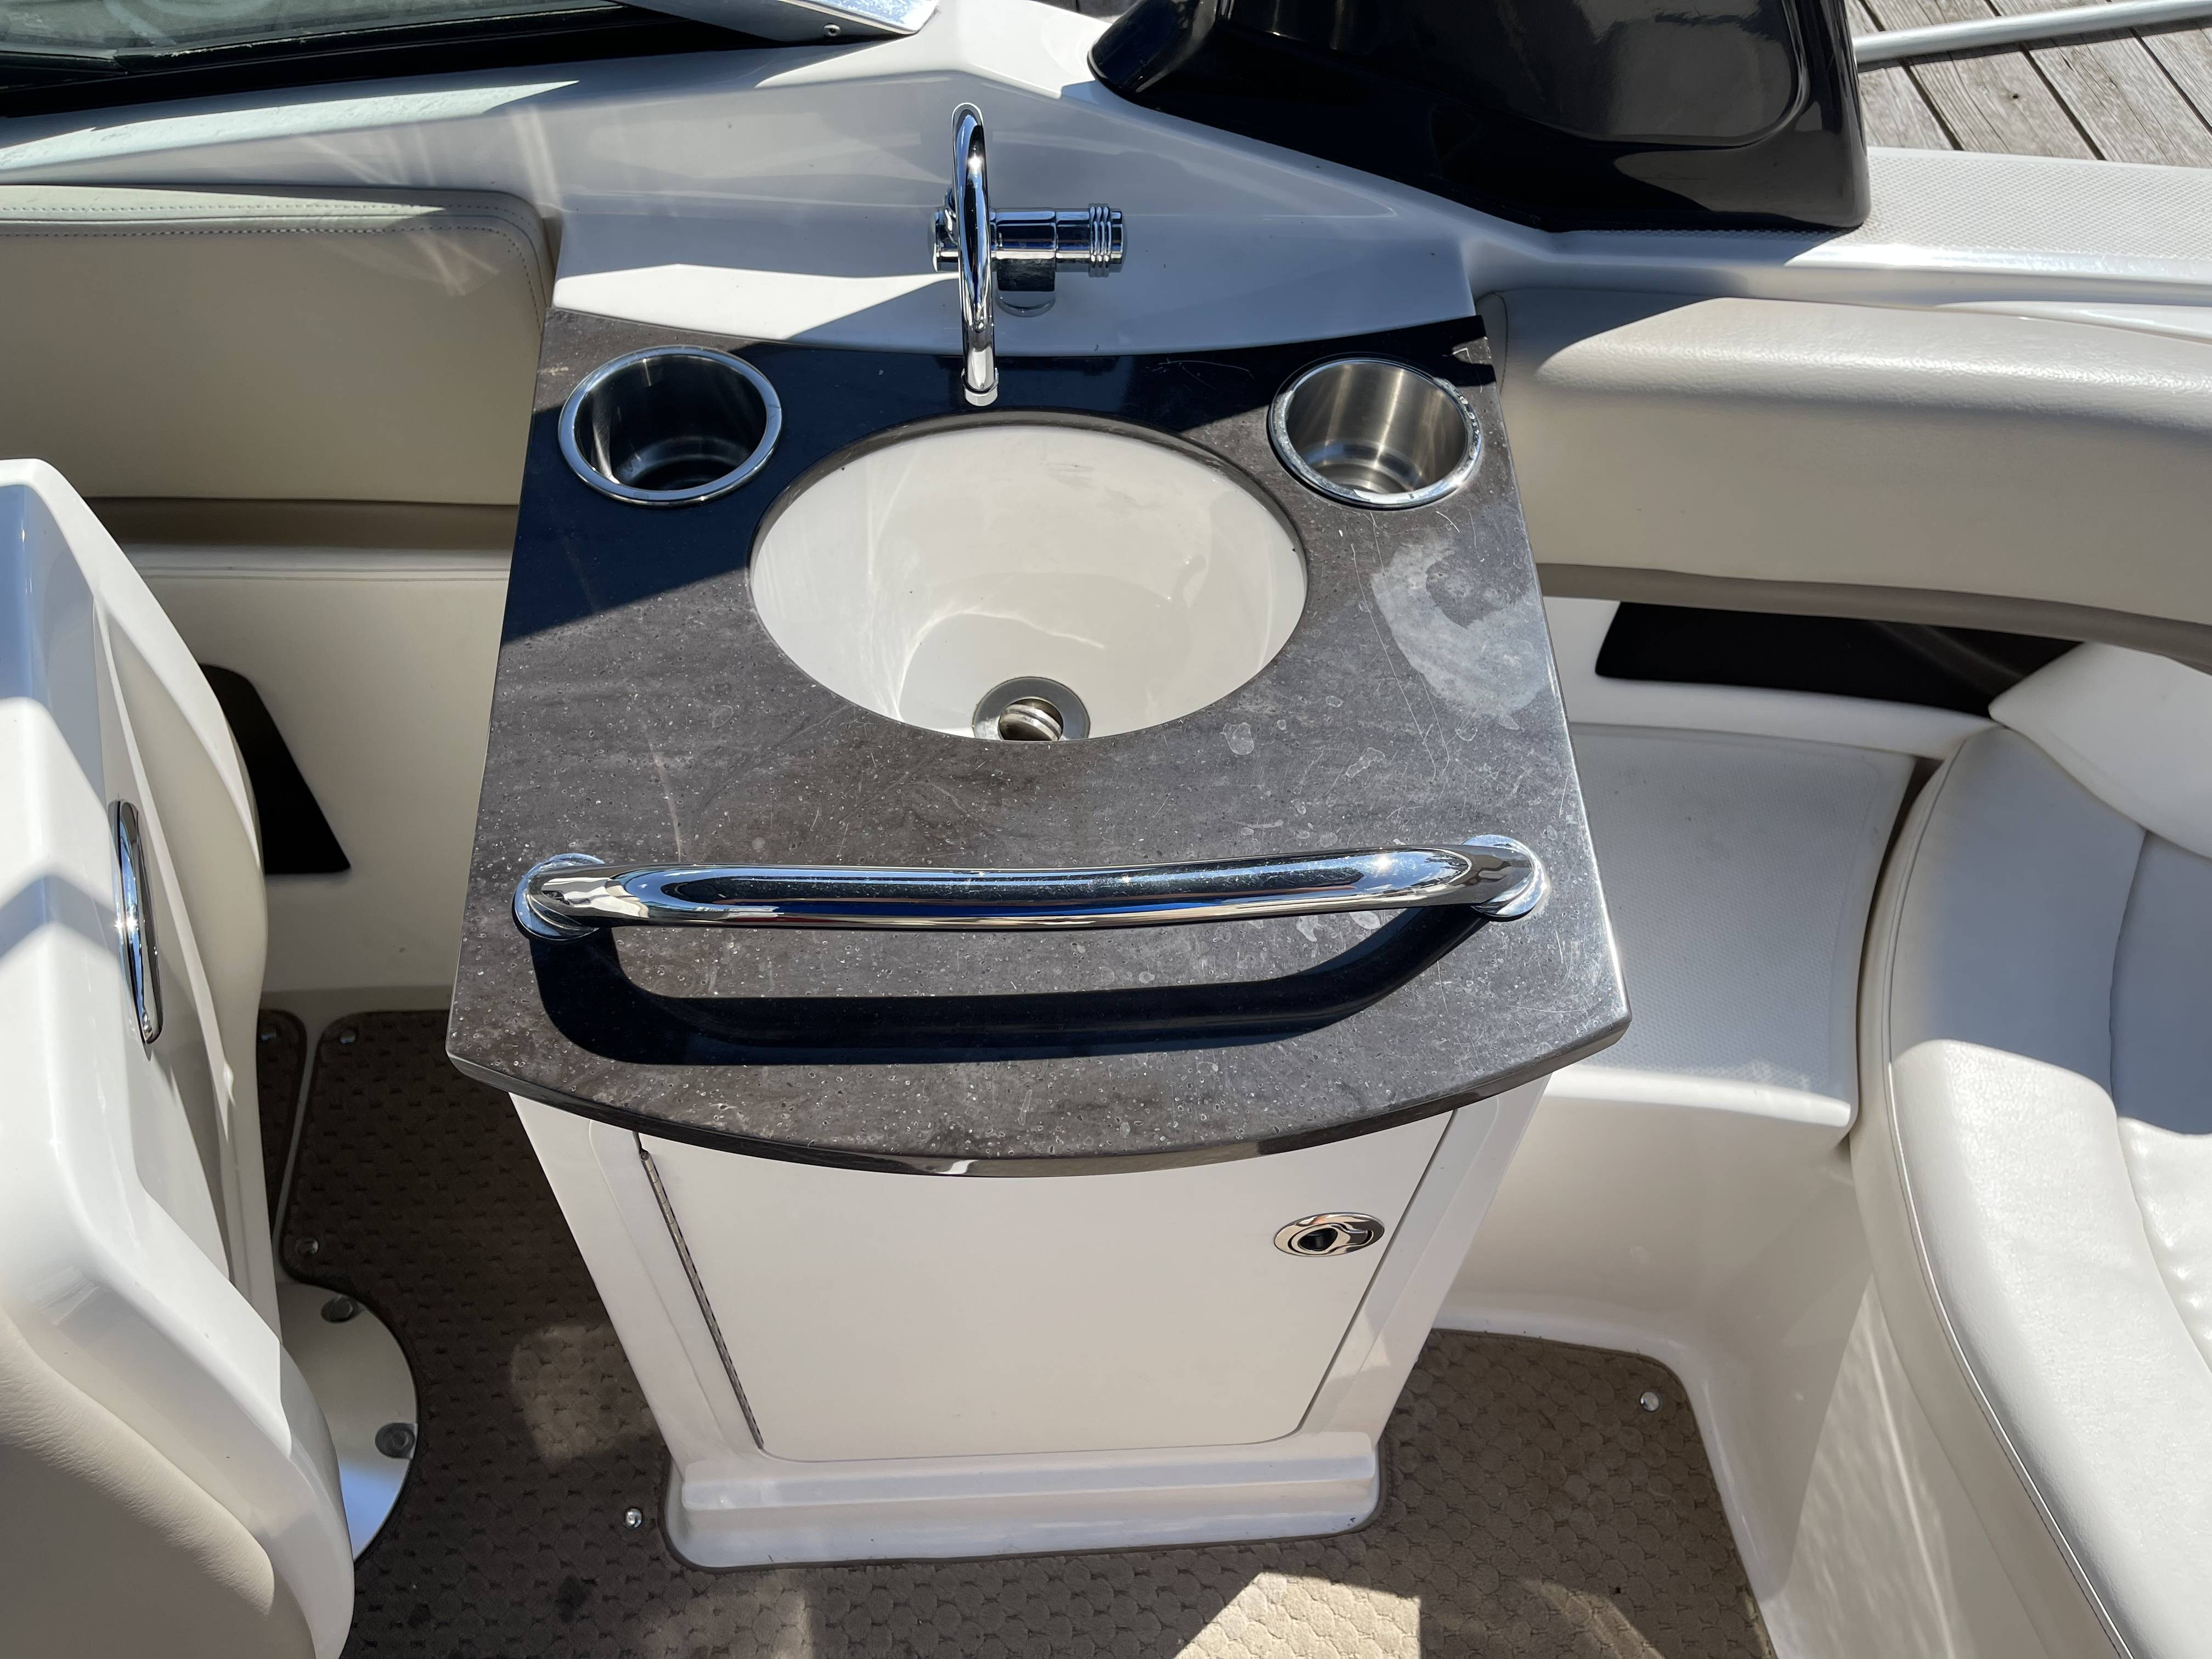 2012 Sea Ray boat for sale, model of the boat is 250 SLX & Image # 15 of 35